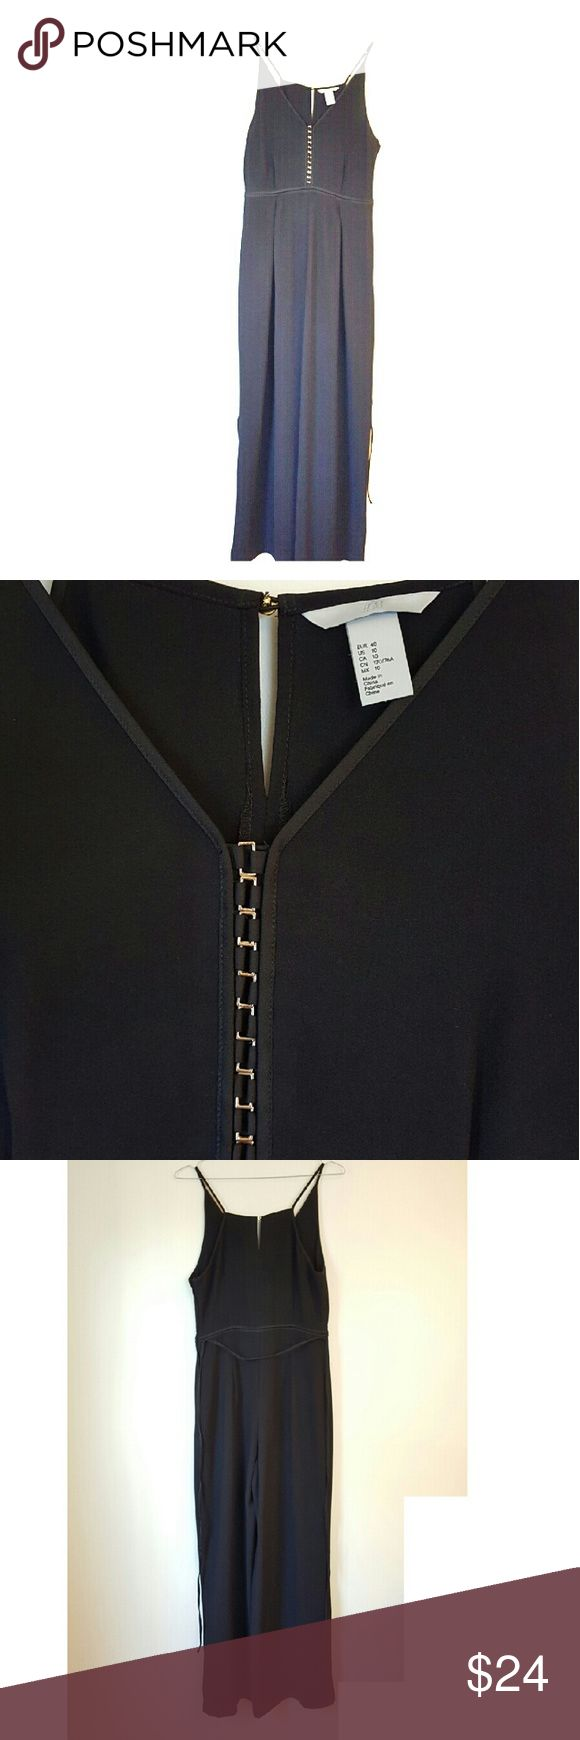 H&M black pant jumpsuit This is a sexy black pant jumpsuit with a matching waist tie and gold details down the chest. Its a size 10 in great condition. Wear this with a pair of sexy heels on a night on the town. H&M Pants Jumpsuits & Rompers